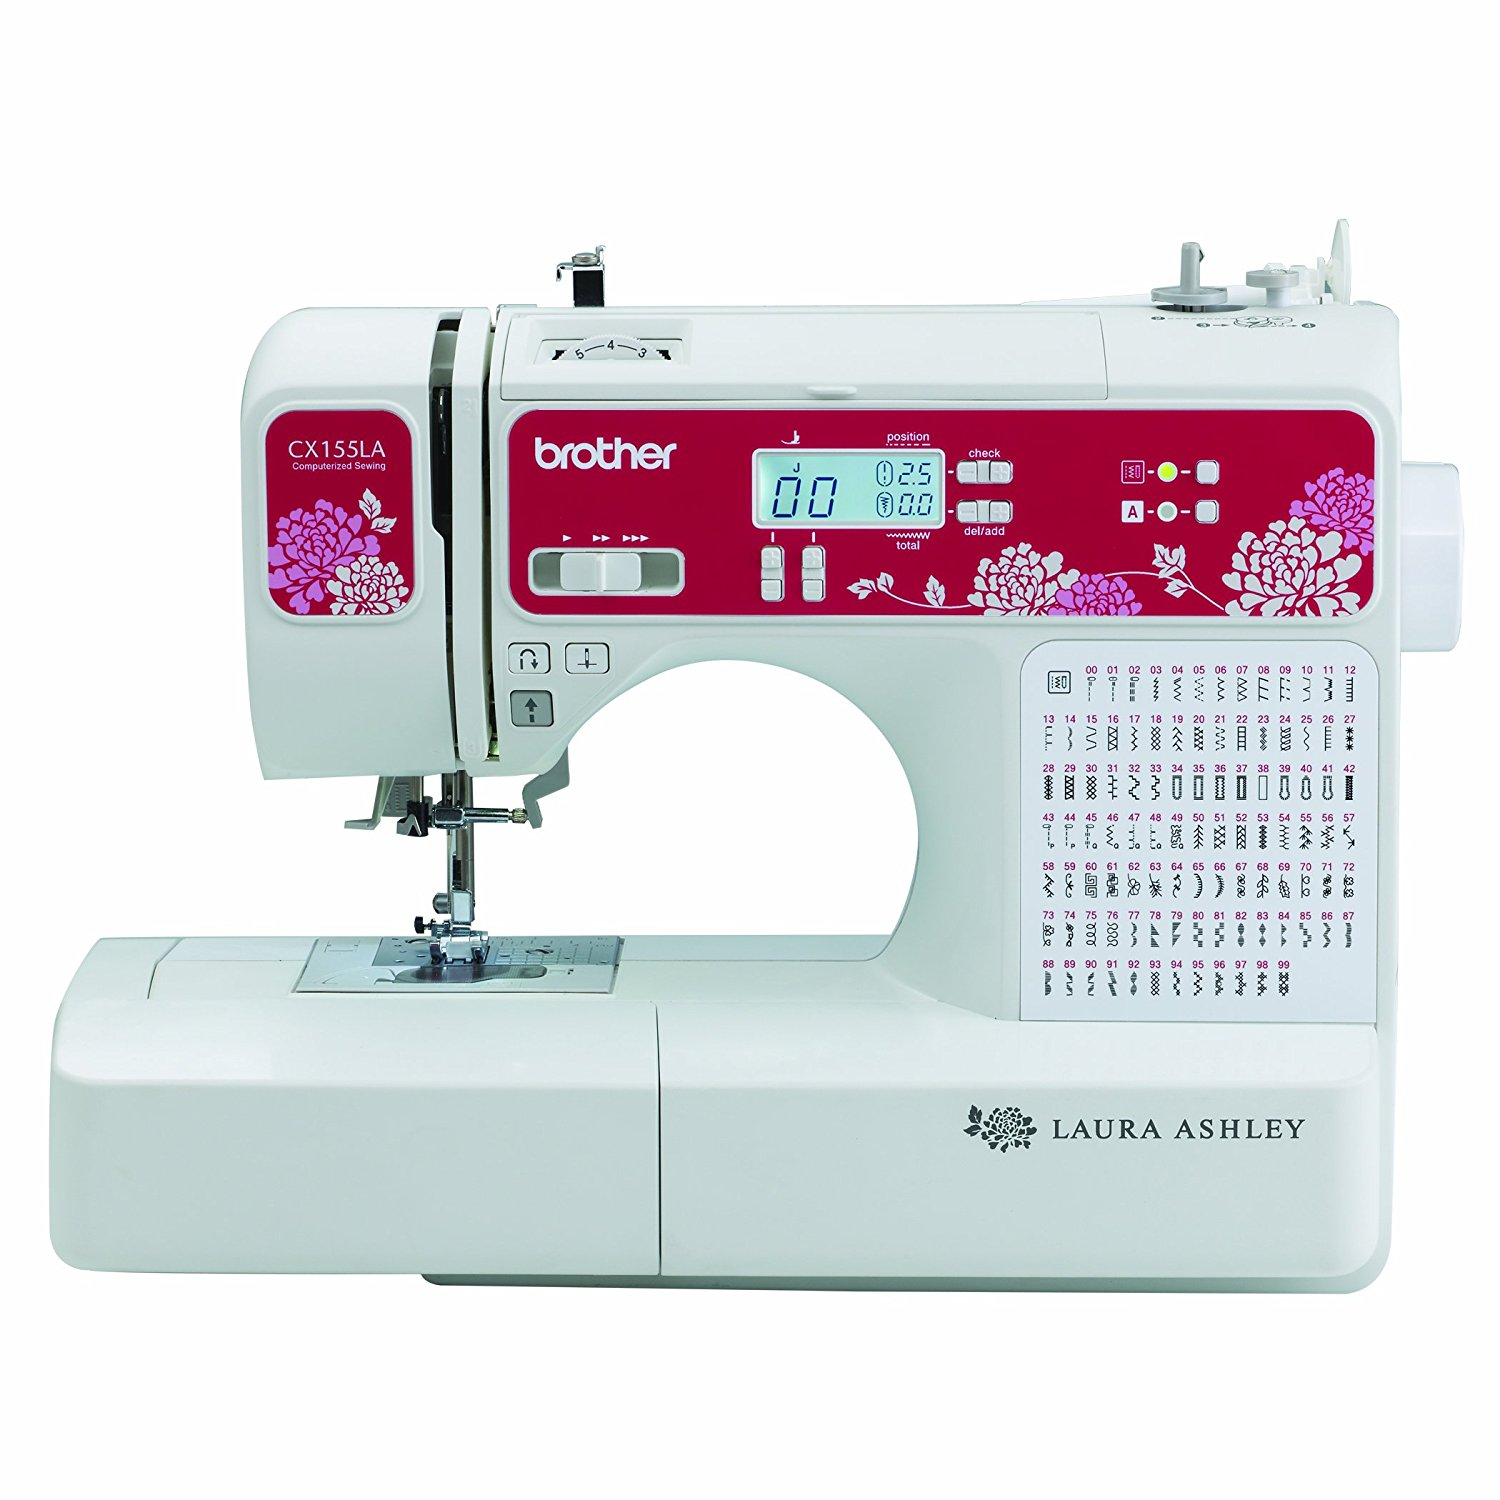 Best Place To Buy Sewing Machine Online